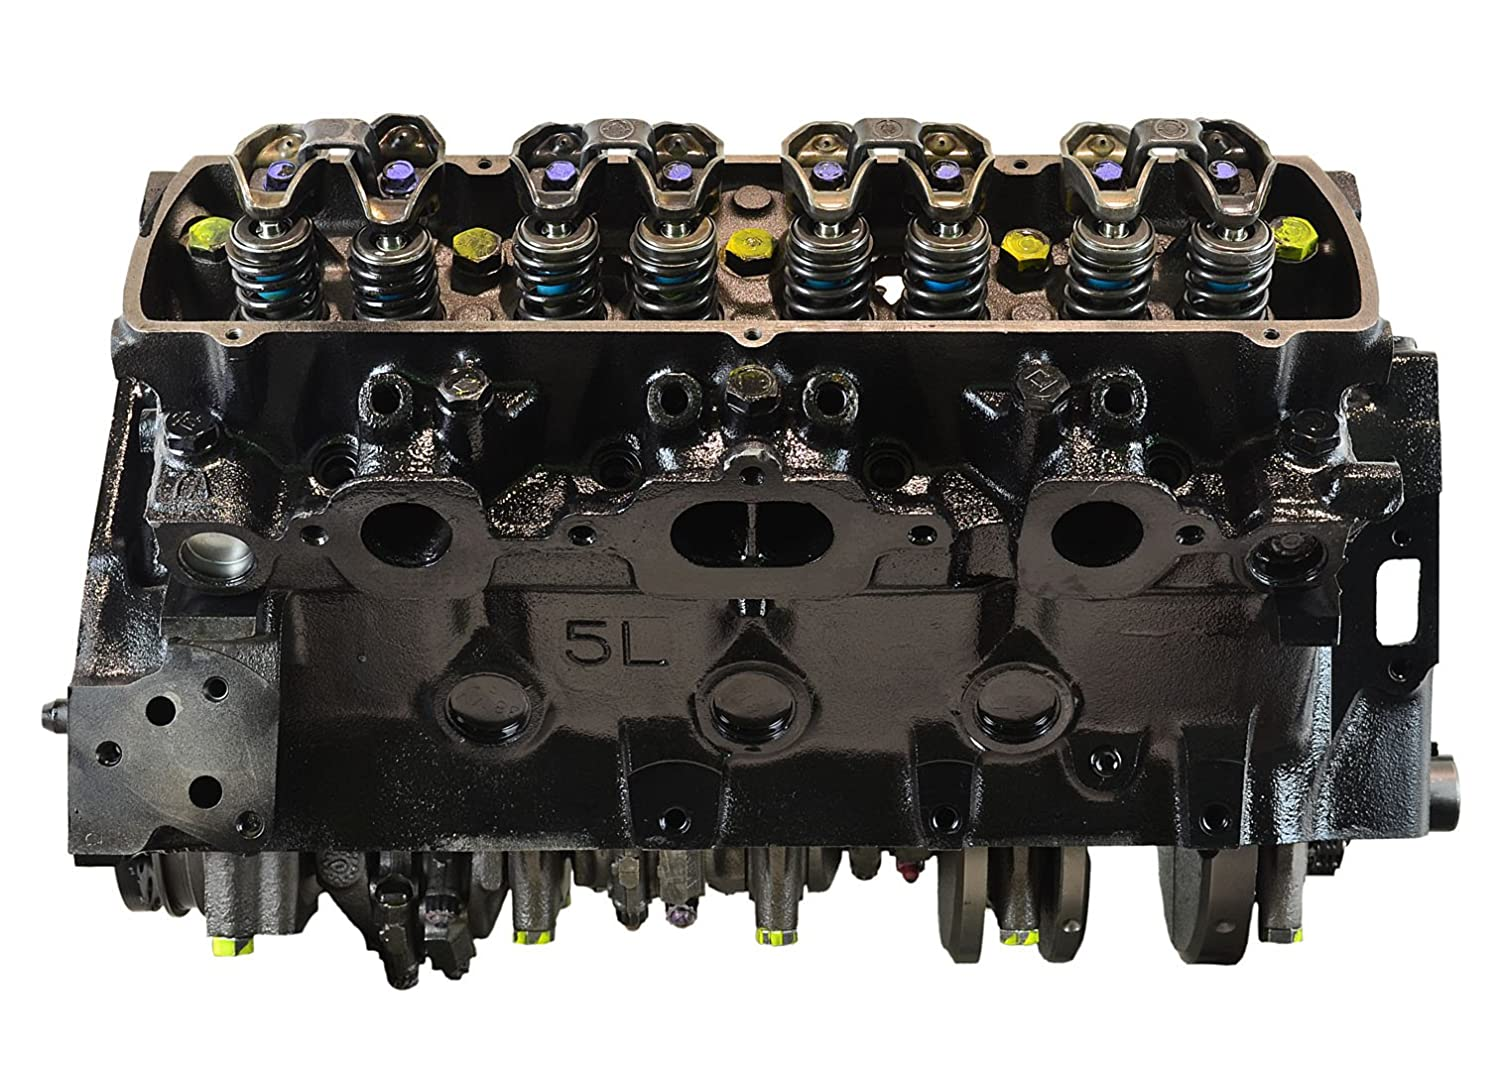 PROFessional Powertrain DO15 Oldsmobile 307 Complete Engine, Remanufactured PROFormance Powertrain